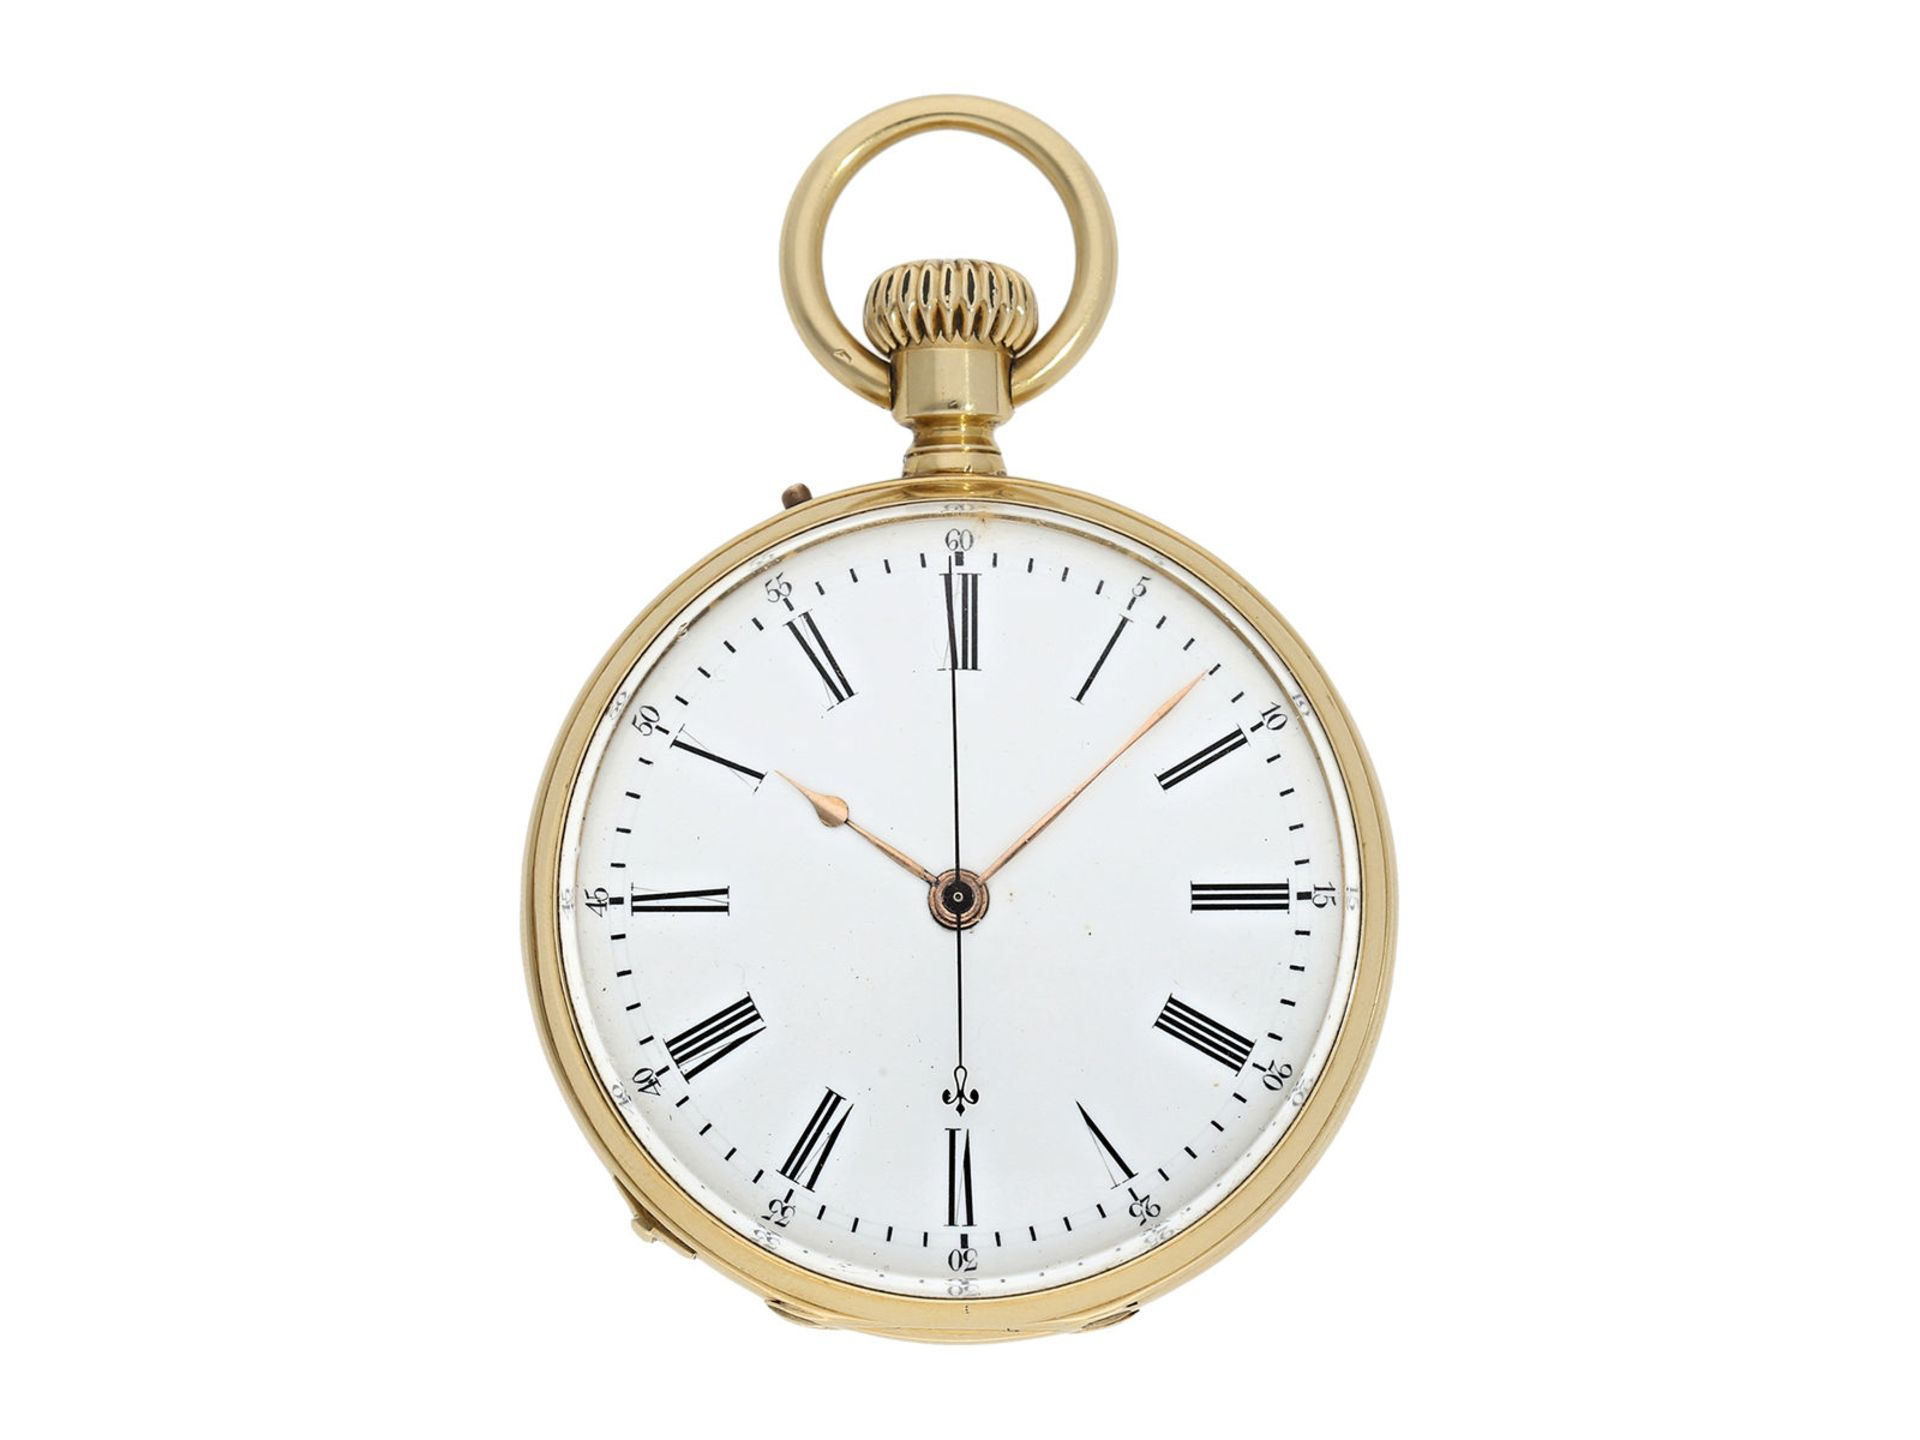 Pocket watch: early precision pocket watch with Seconde Morte, very fine quality, DuBois & LeRoy No.